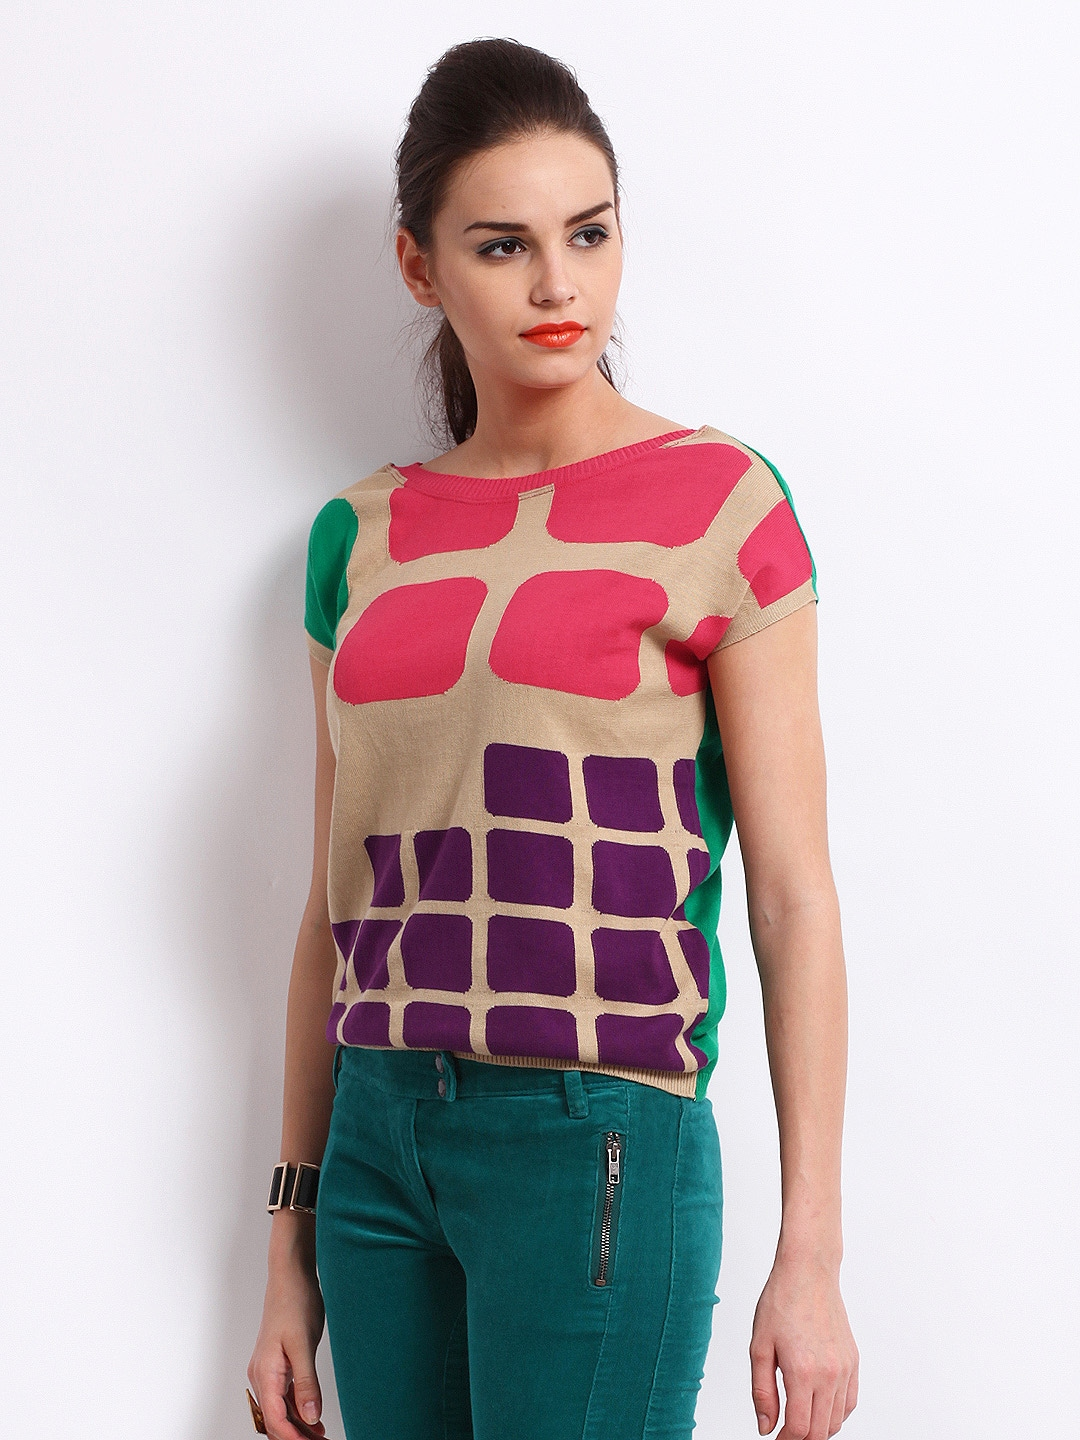 Buy United Colors Of Benetton Women Multi-Coloured Sweater (multicolor)  1450614 for women online in india on Myntra at Yebhi.com 8471dff9a